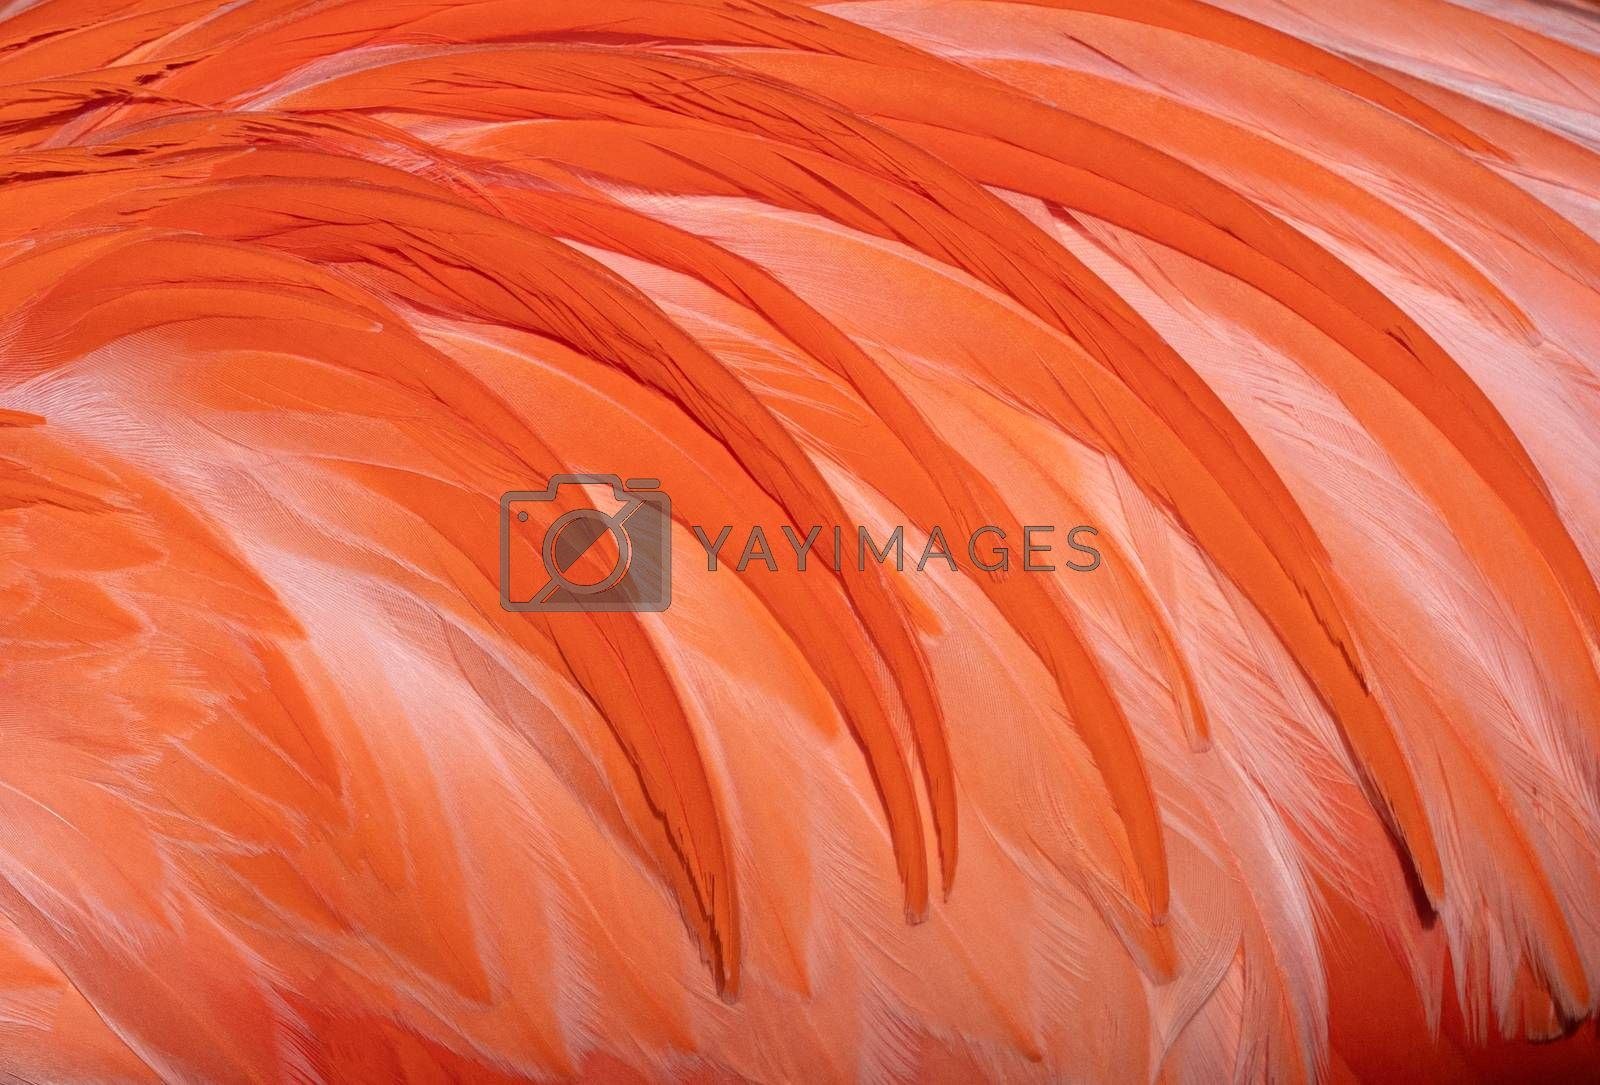 Background, close up image of feathers